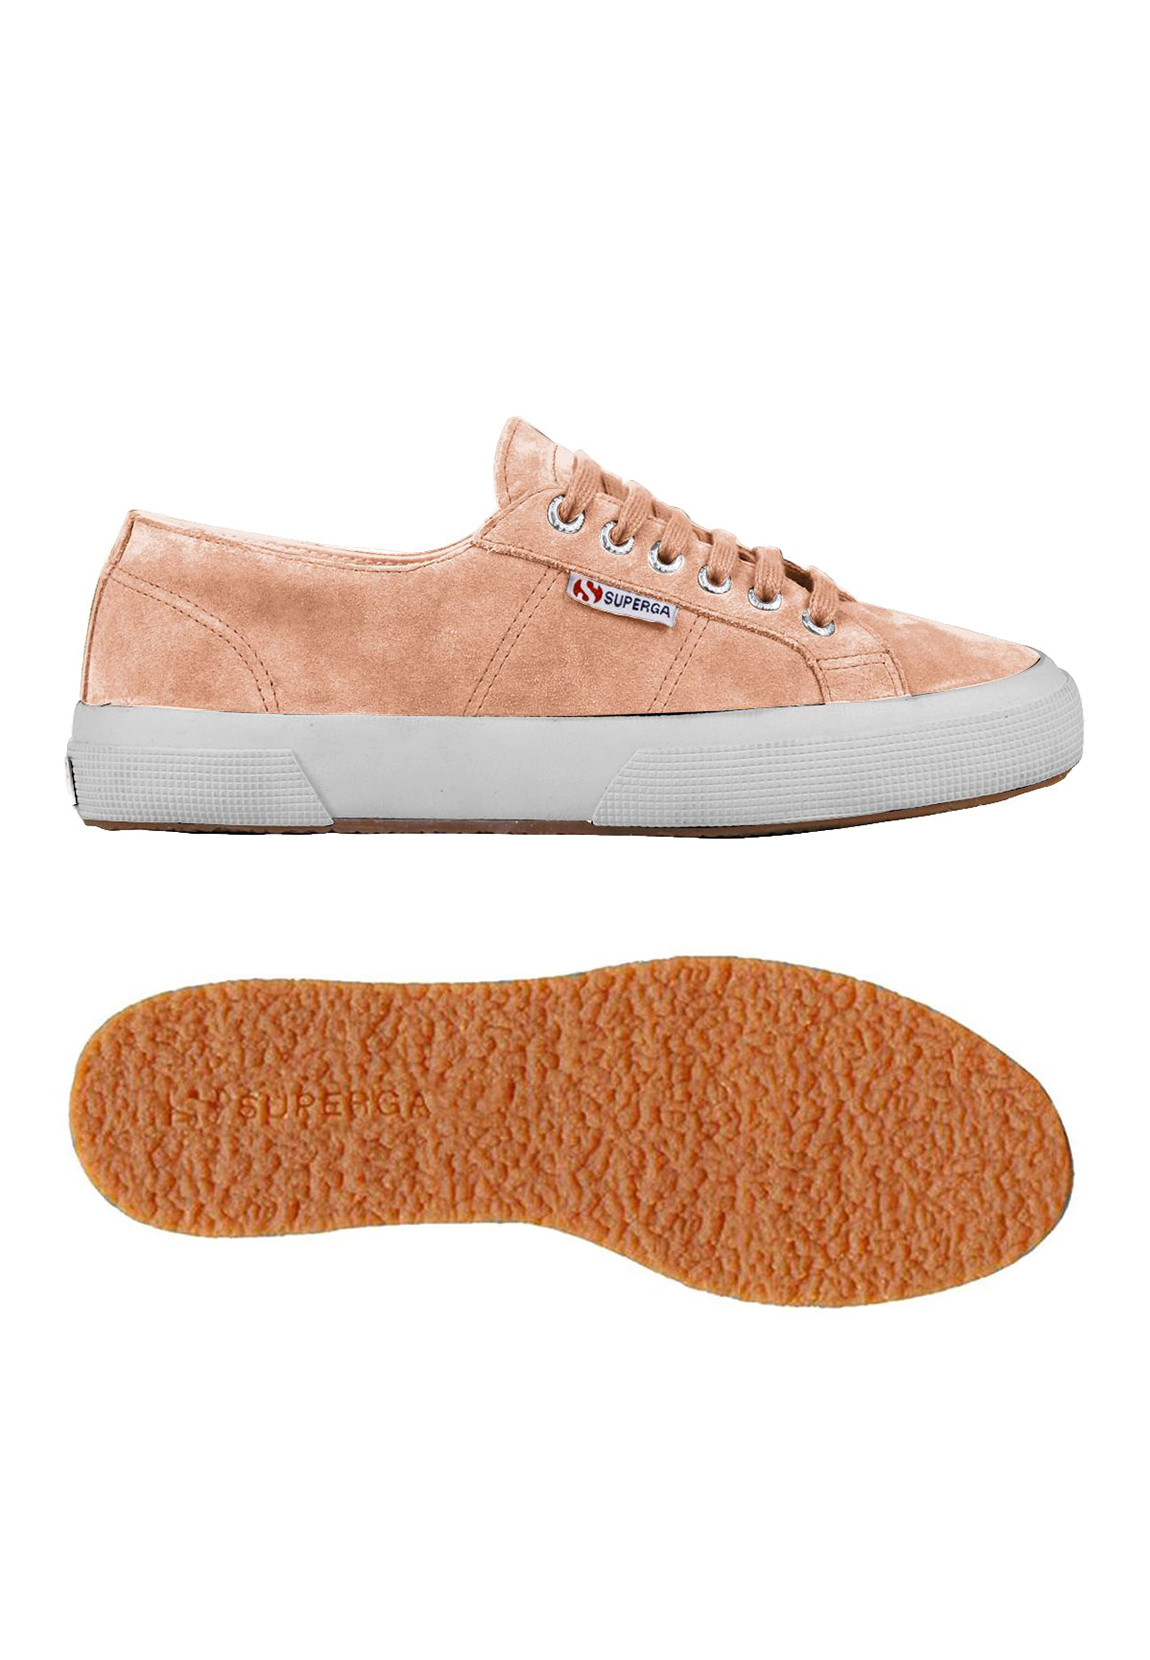 3d71a45b3b2e8 Details about Superga Trainers 2750 Sueu S003sr0 182 Pink Peach Tropical